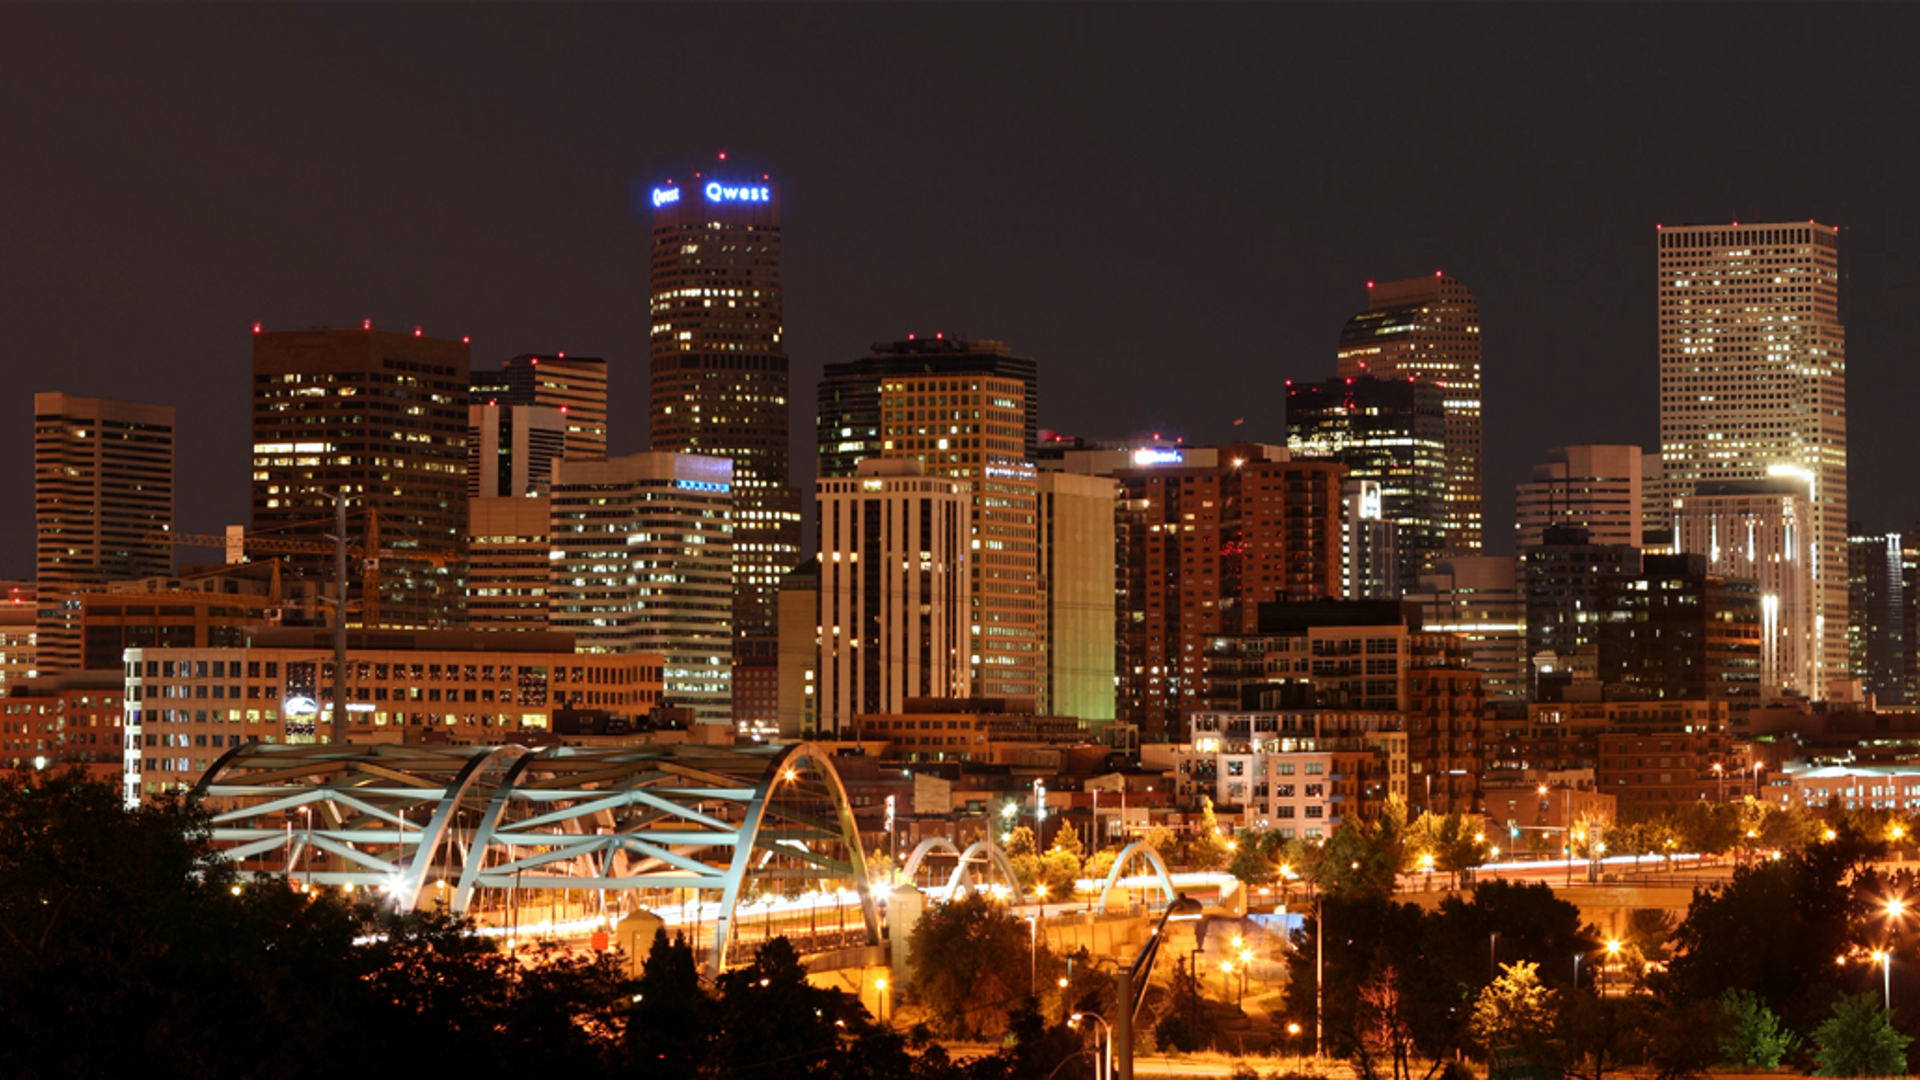 Denver Colorado 1920x1080p HD Travel Wallpaper 1920x1080